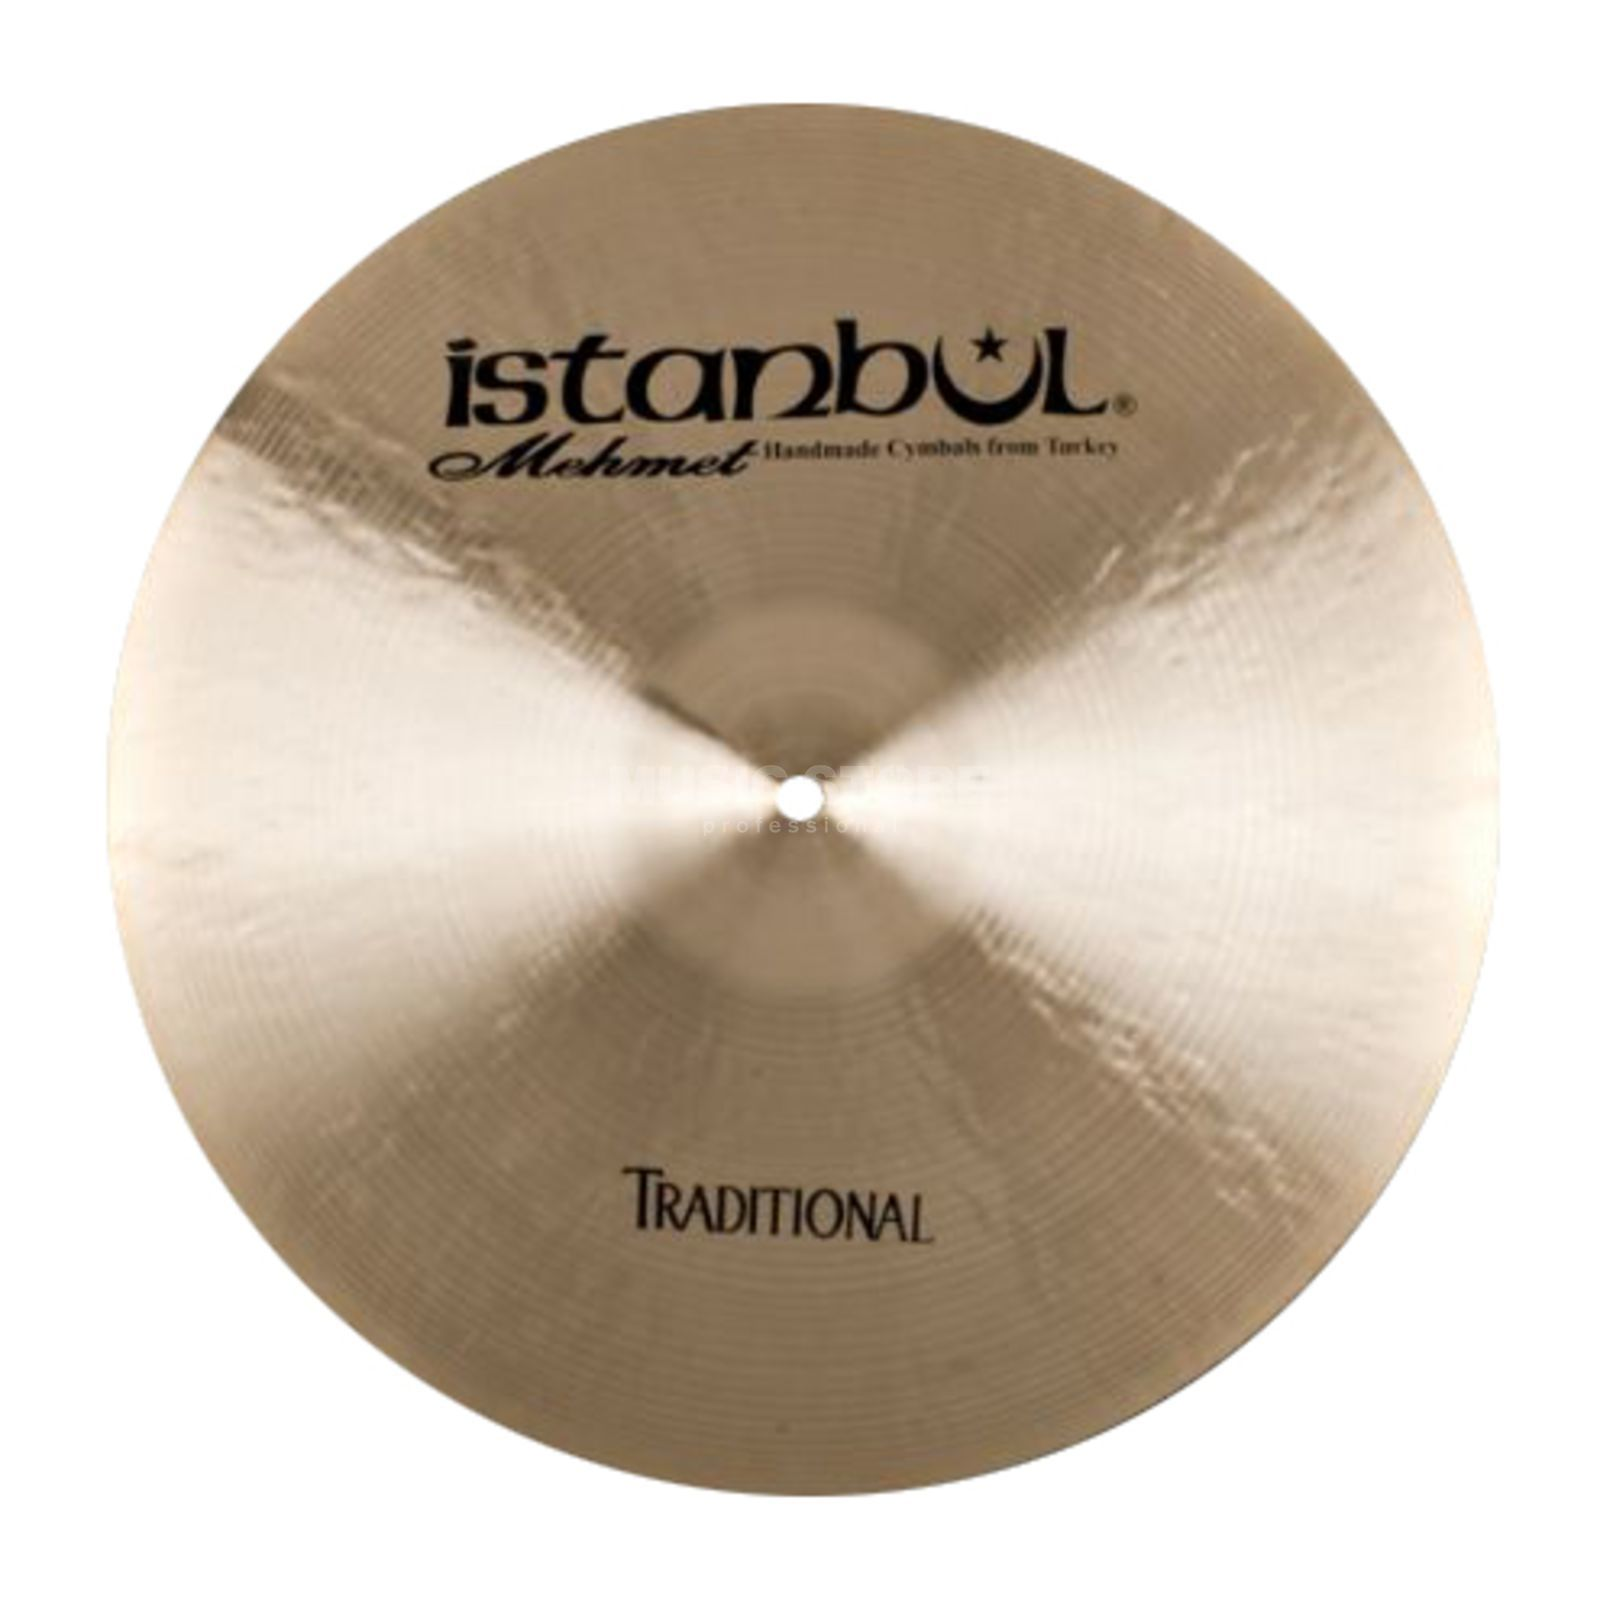 "Istanbul Traditional Dark Crash 14"", CD15 Product Image"